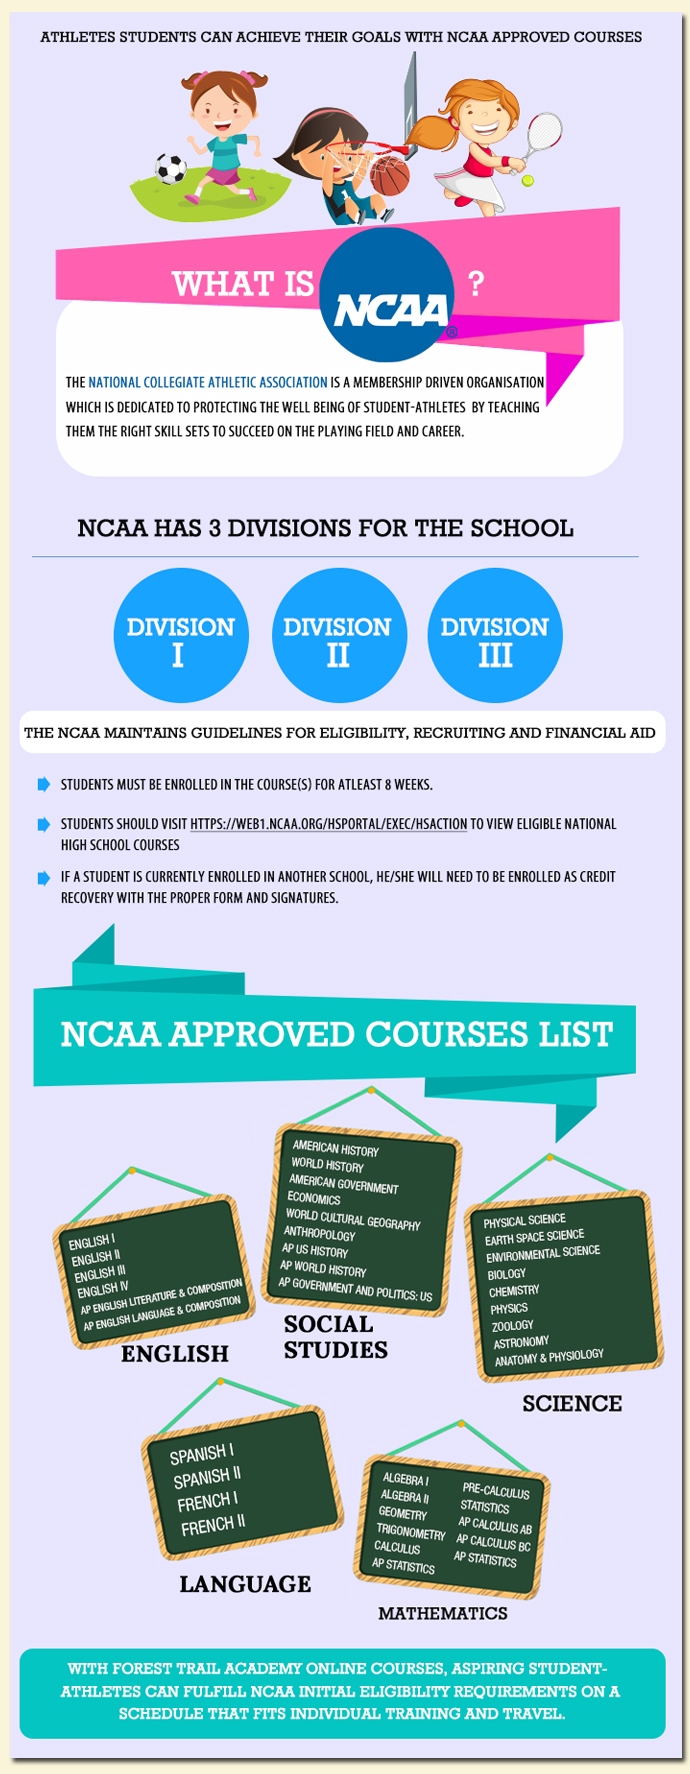 NCAA approved online courses